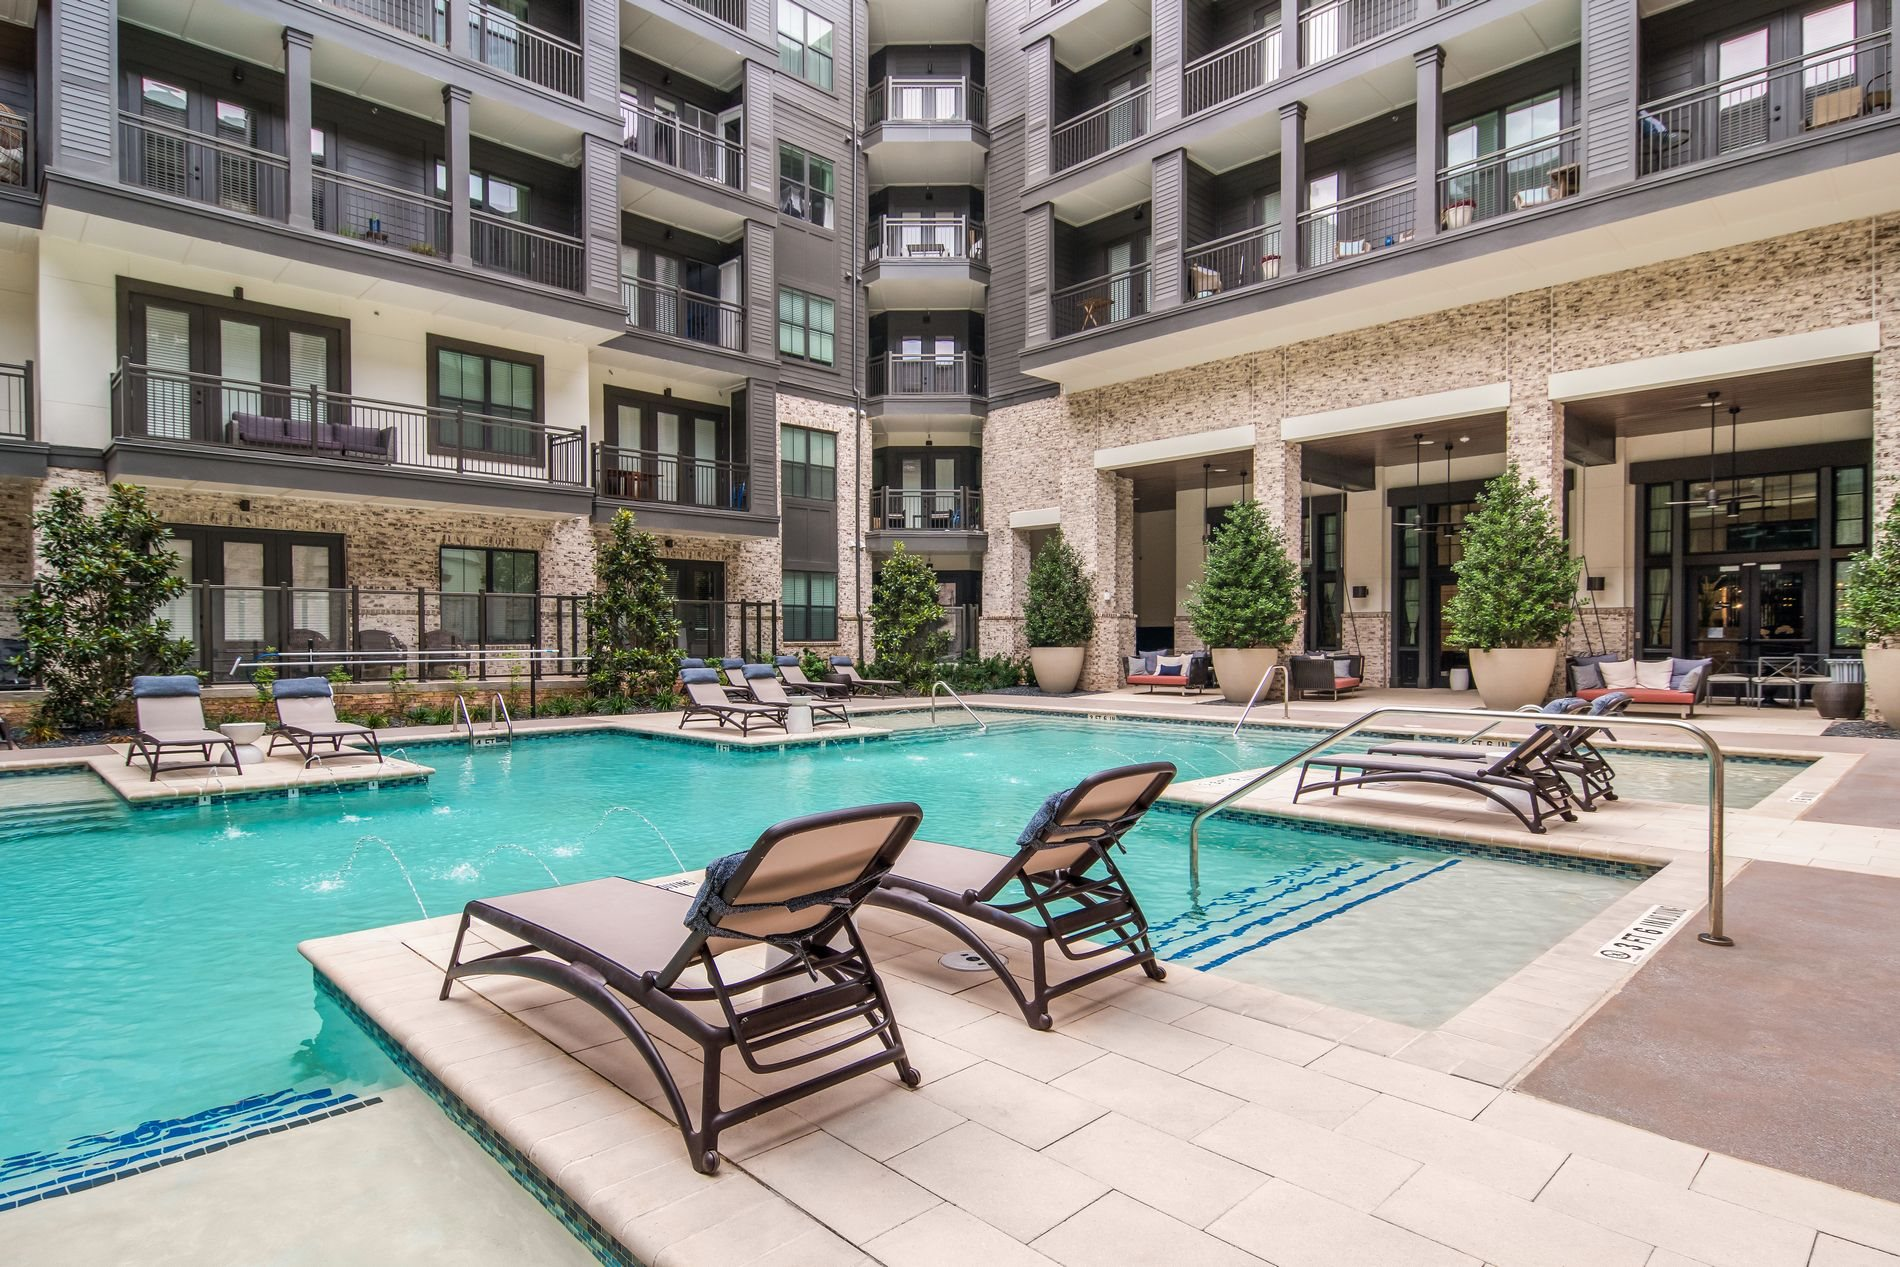 Poolside Seating at The Alastair at Aria Village Apartment Homes in Sandy Springs, Georgia, GA